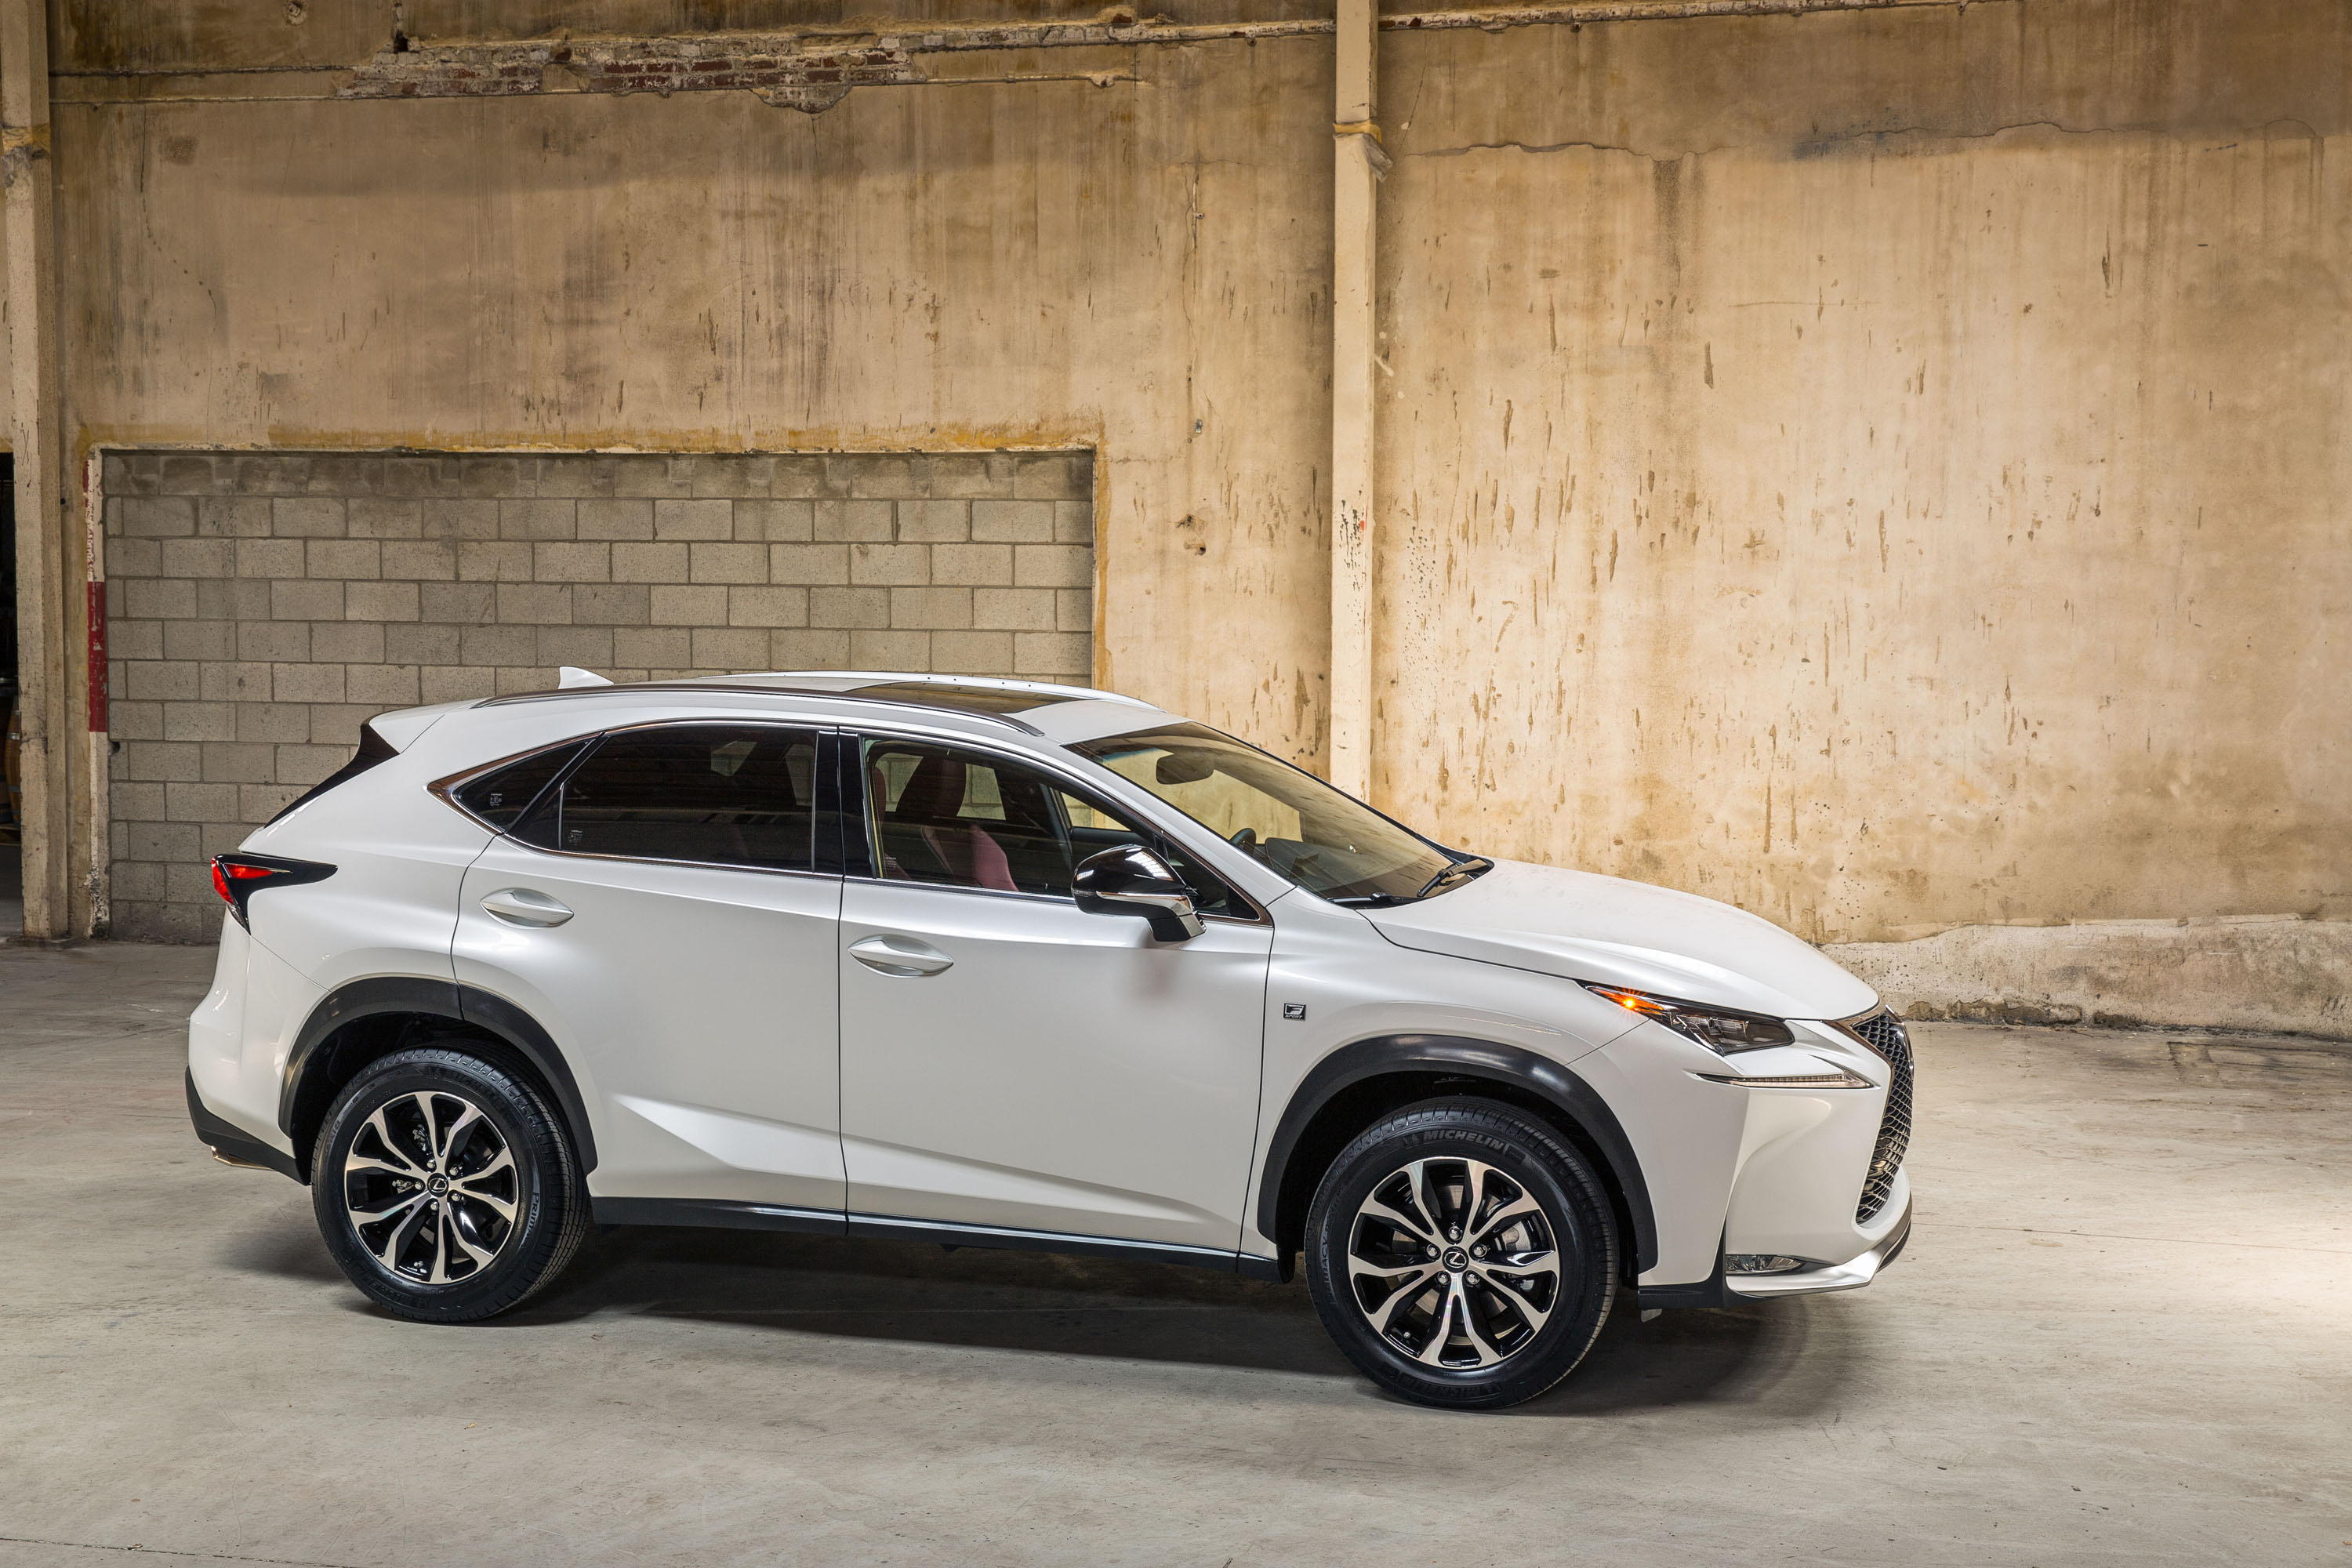 metallic crossover composite lexus silver awd large nx research price groovecar lining